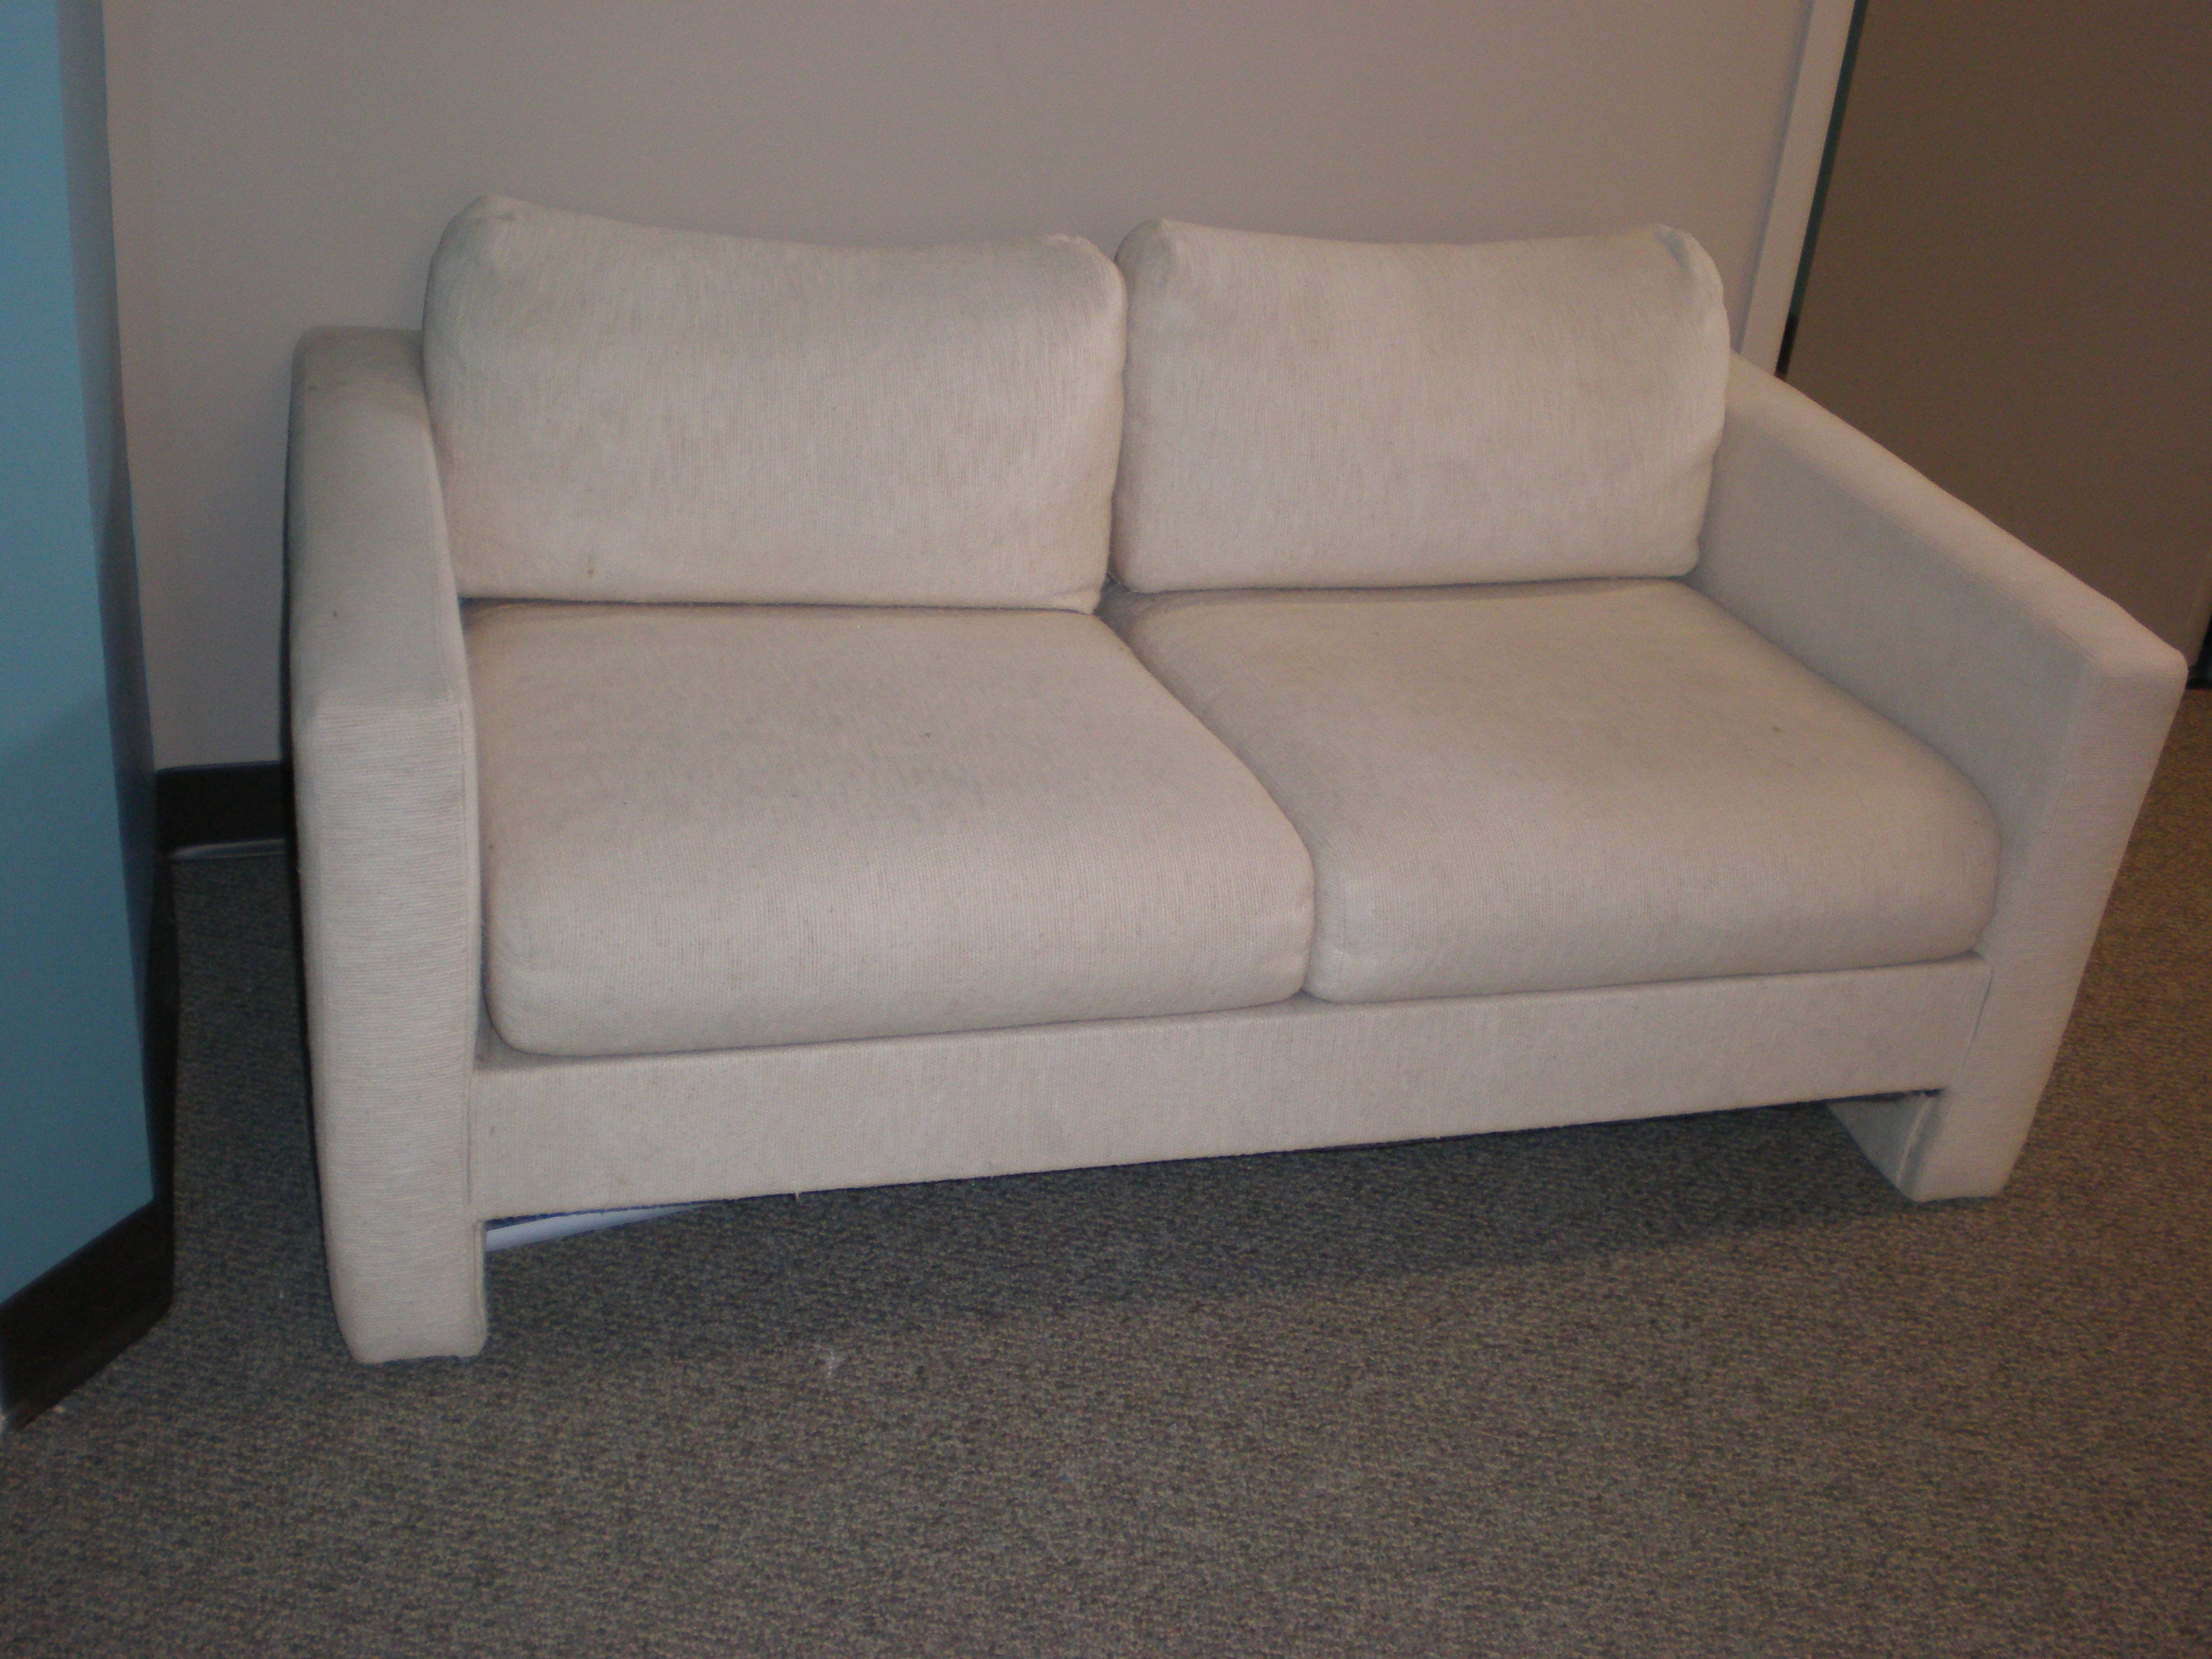 couch2-before.jpg